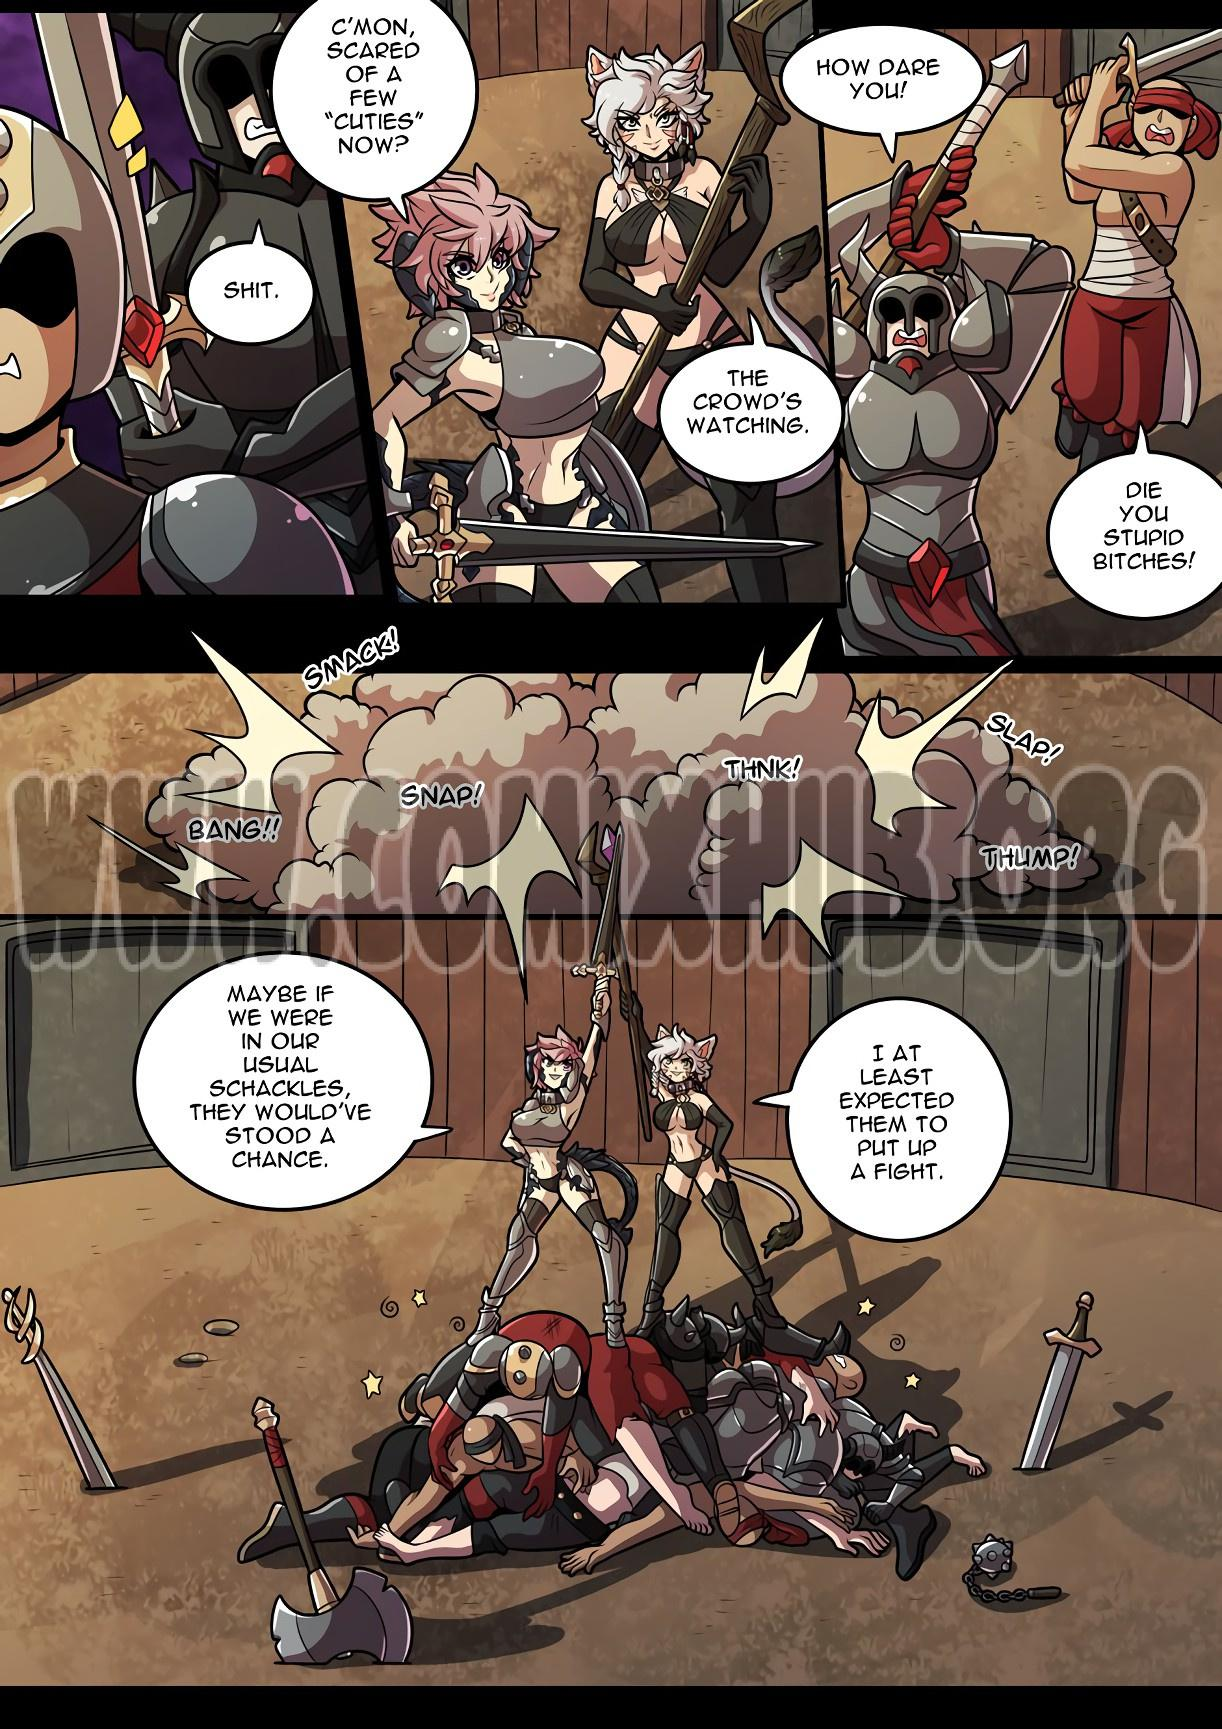 Garlean Trouble porn comics Oral sex, Anal Sex, Bestiality, Blowjob, Creampie, Cum Swallow, Domination, Double Penetration, Fantasy, fingering, Group Sex, Masturbation, Monster Girls, Rape, Sex Toys, Straight, Submission